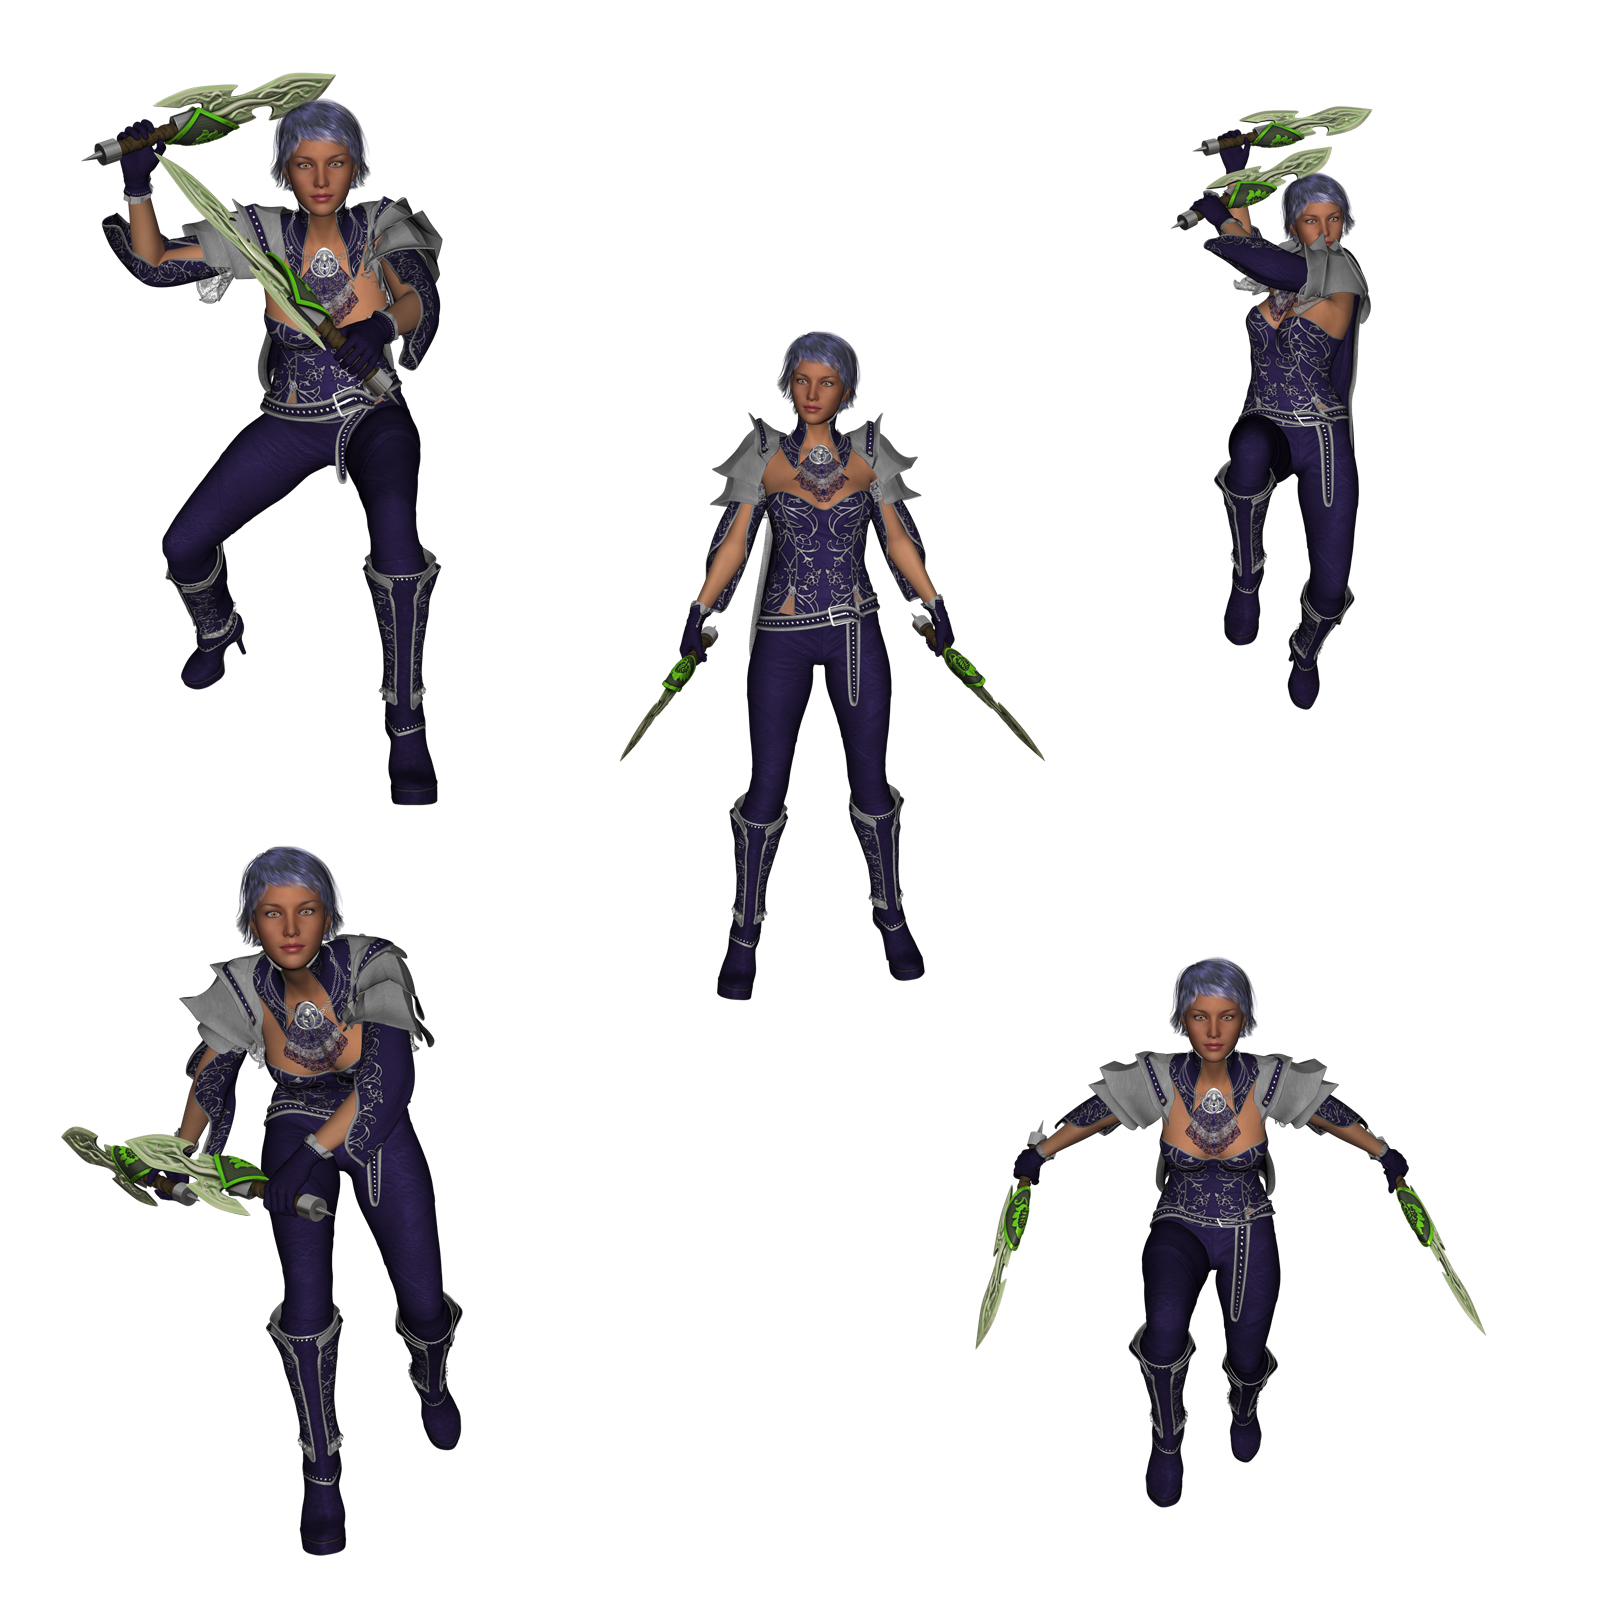 Dual Wield Swords Poses For G3 3d Figure Assets Thecava